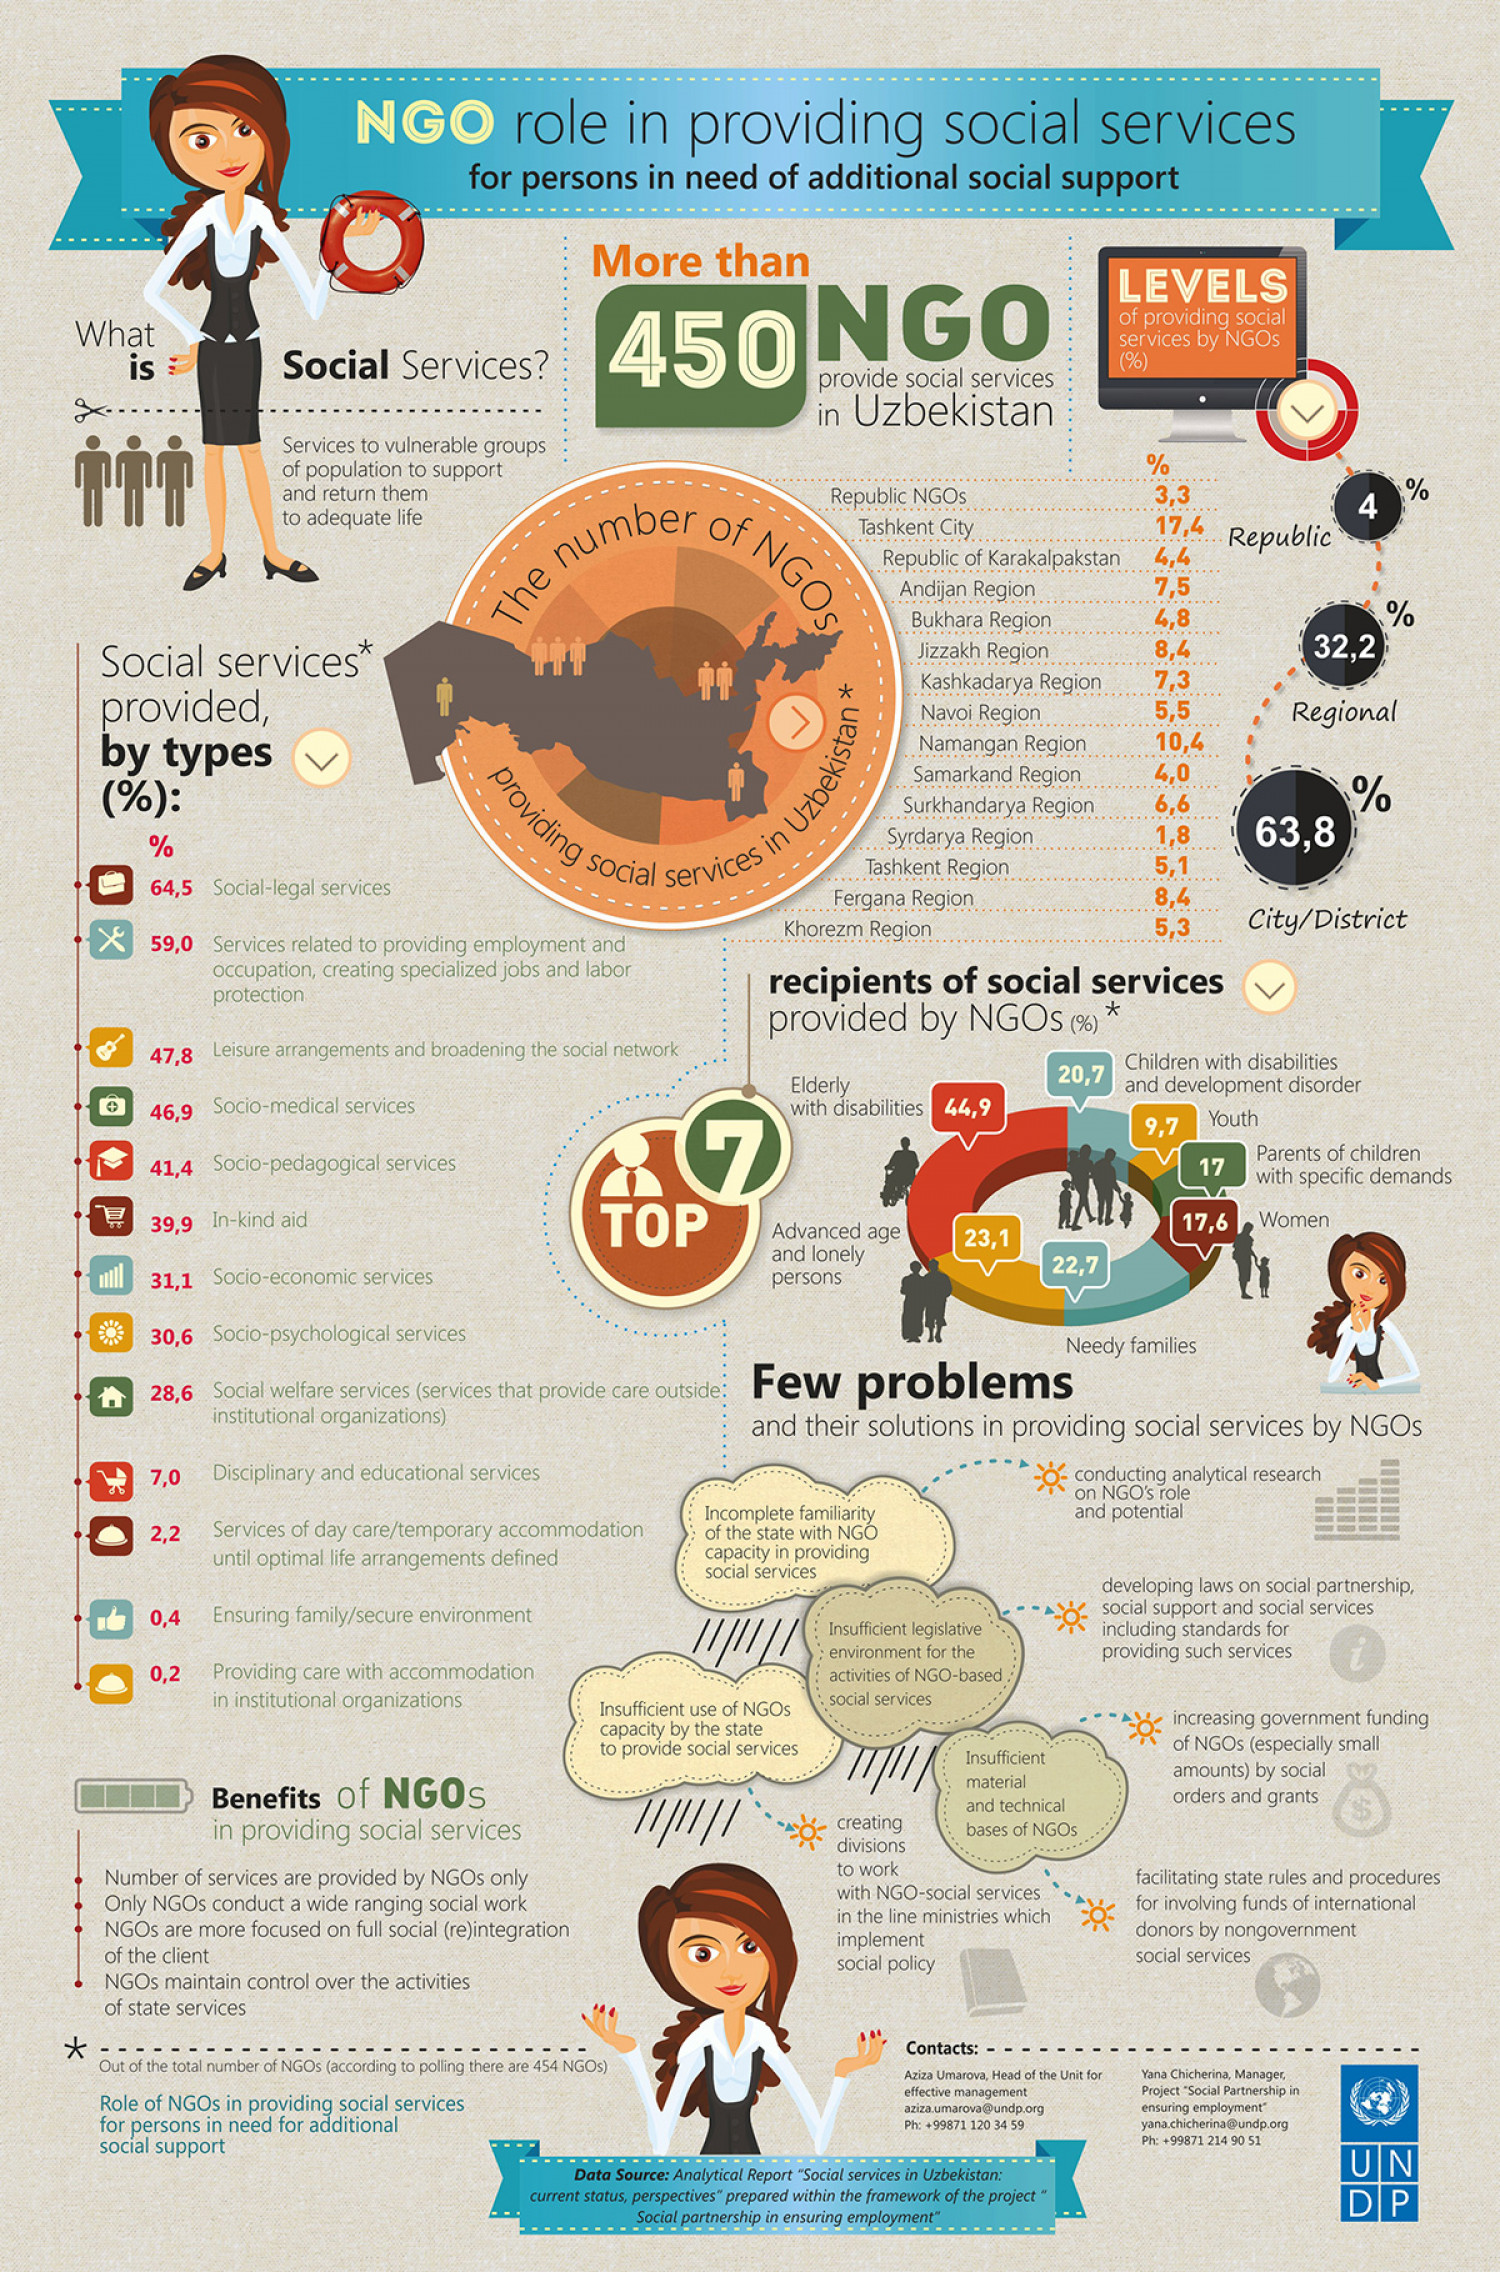 NGO Role in Providing Social Services Infographic